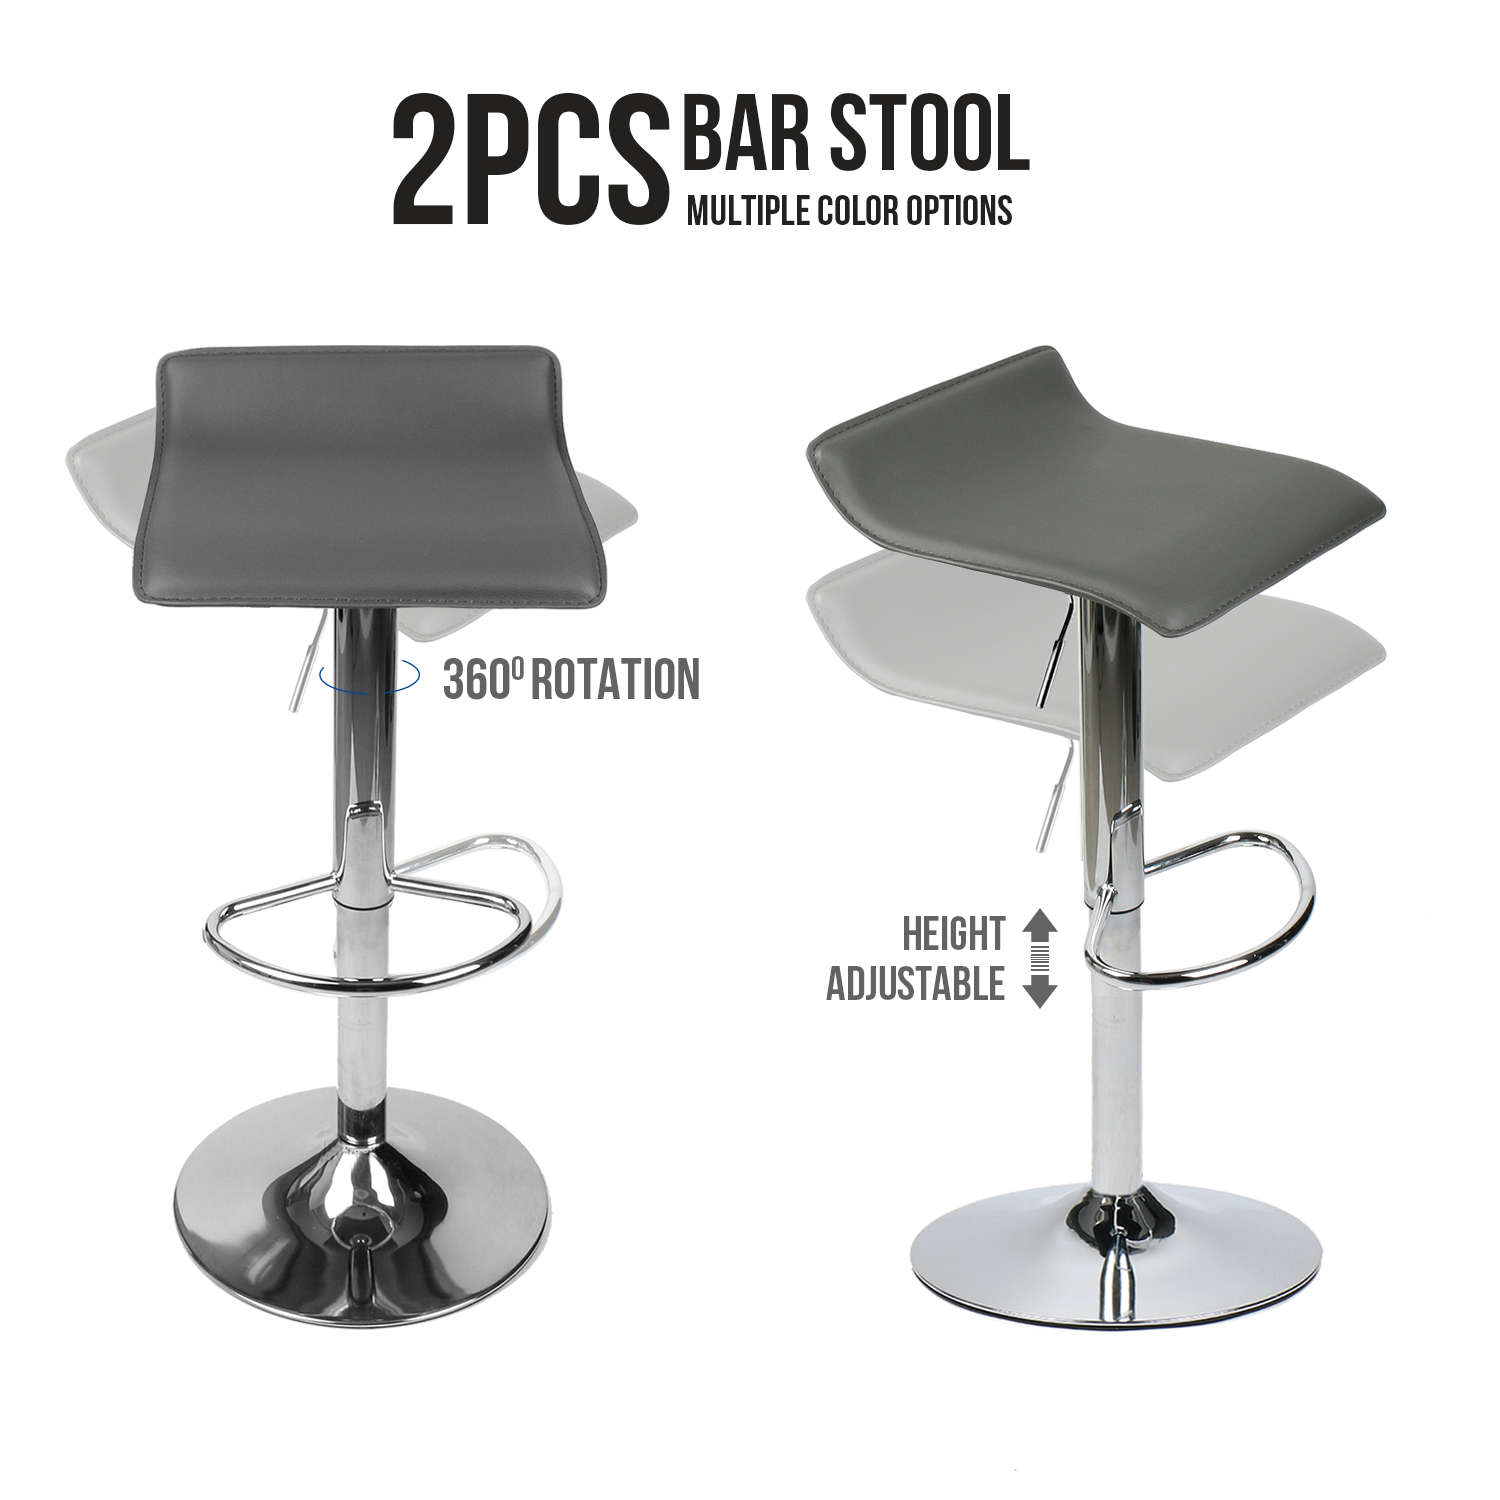 Set Of 2 PU Leather Bar Stools Counter Height Chrome Swivel Adjustable Backless Dining Chair Kitchen Pub